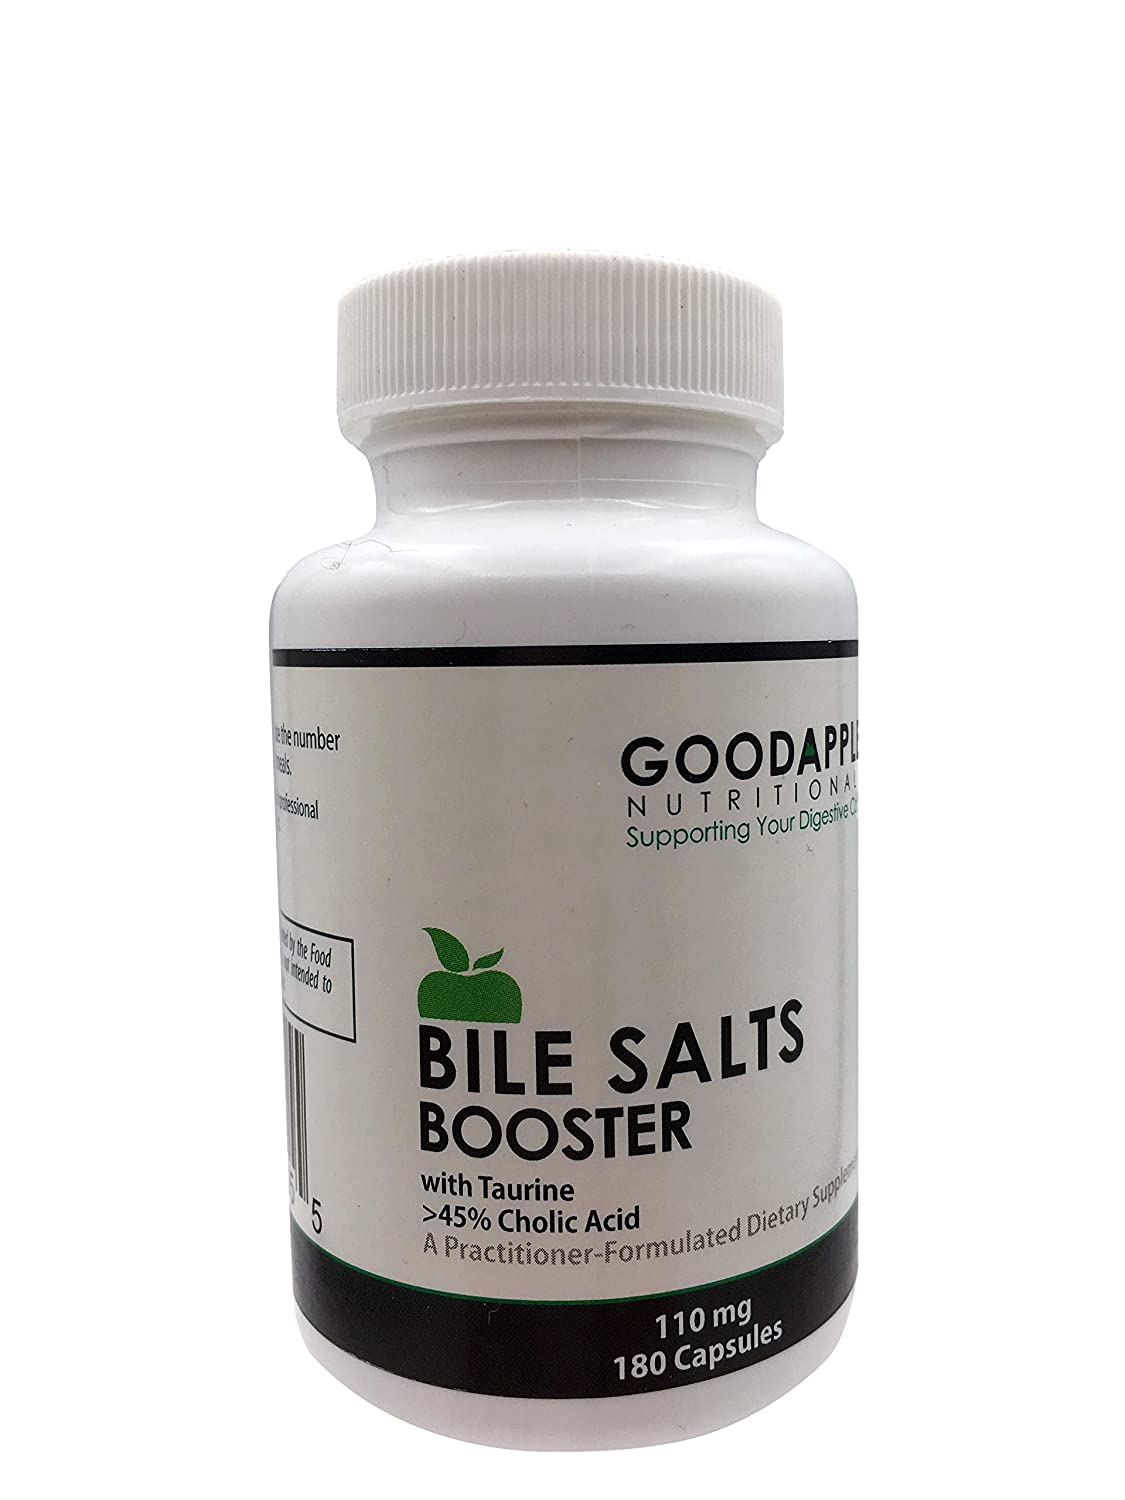 Bile Salts Booster for Gallbladder and No Gallbladder by GoodApple Nutritionals Ox Bile Salts with Taurine 180 capsules 110mg